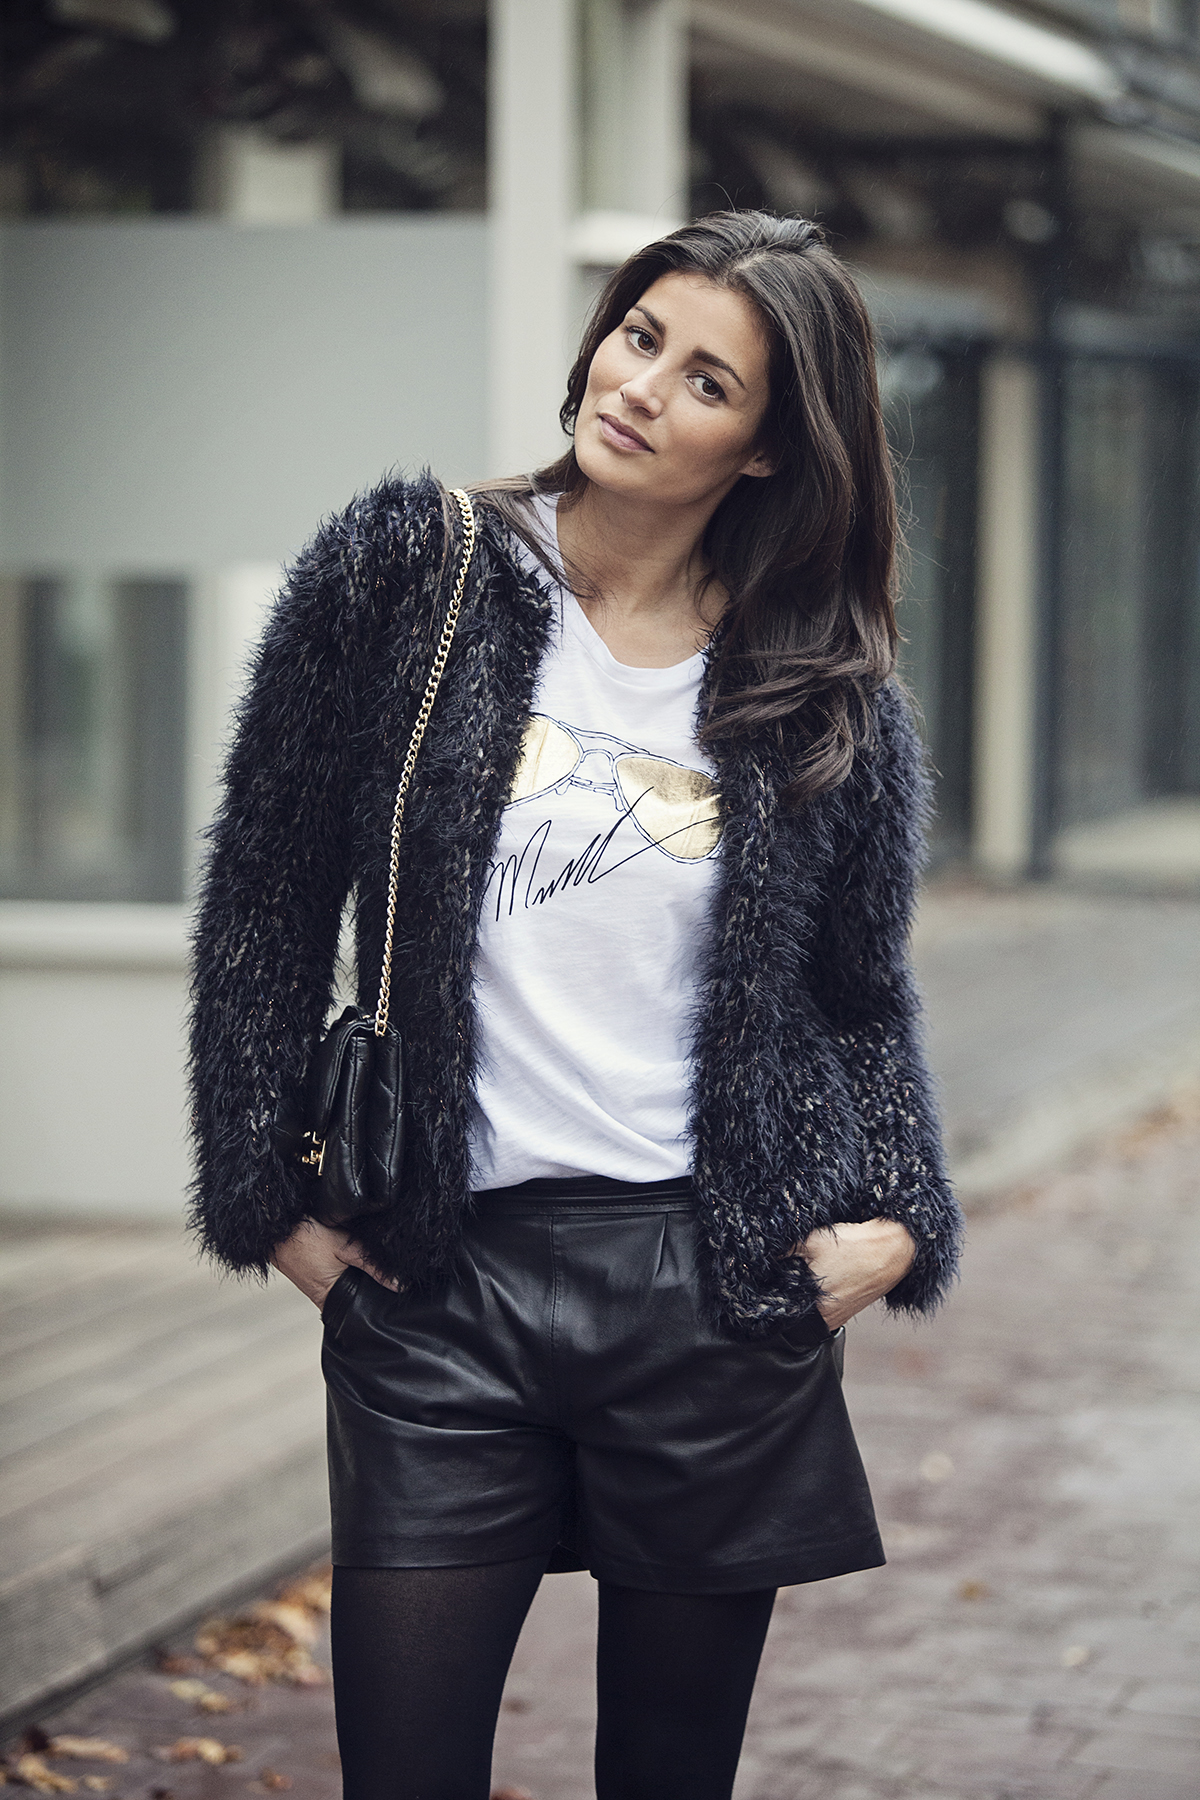 How to wear leather shorts in autrumn winter blogforshops streetstyle 2014 Michael Kors Kiro by Kim